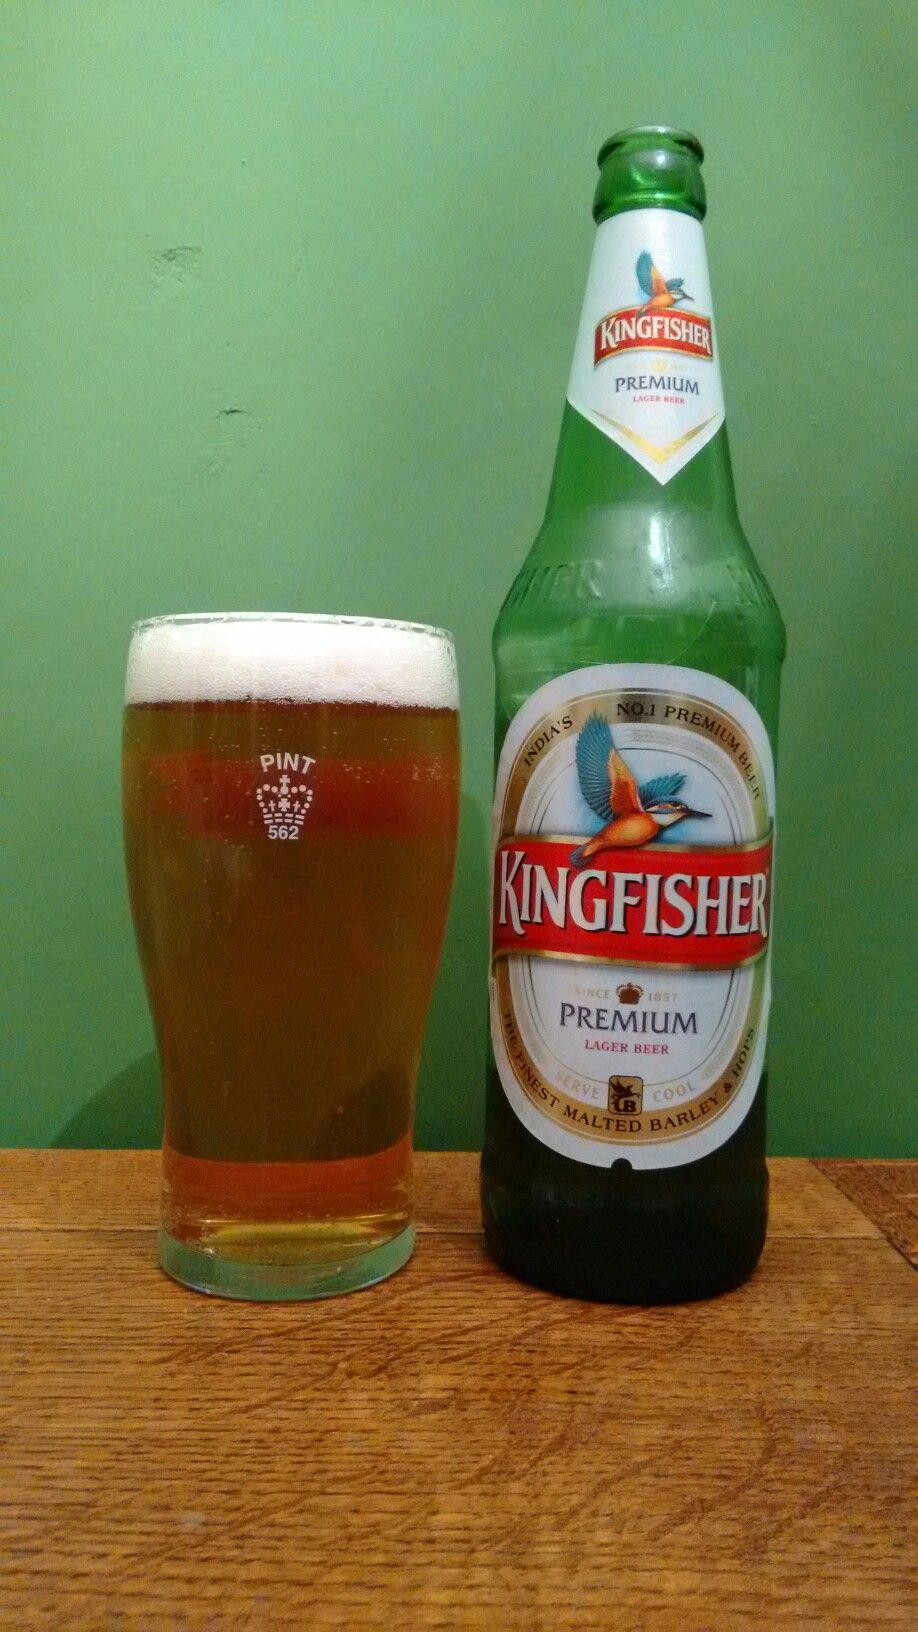 kingfisher premium lager an indian beer apparently but owned by united breweries ltd and brewed. Black Bedroom Furniture Sets. Home Design Ideas